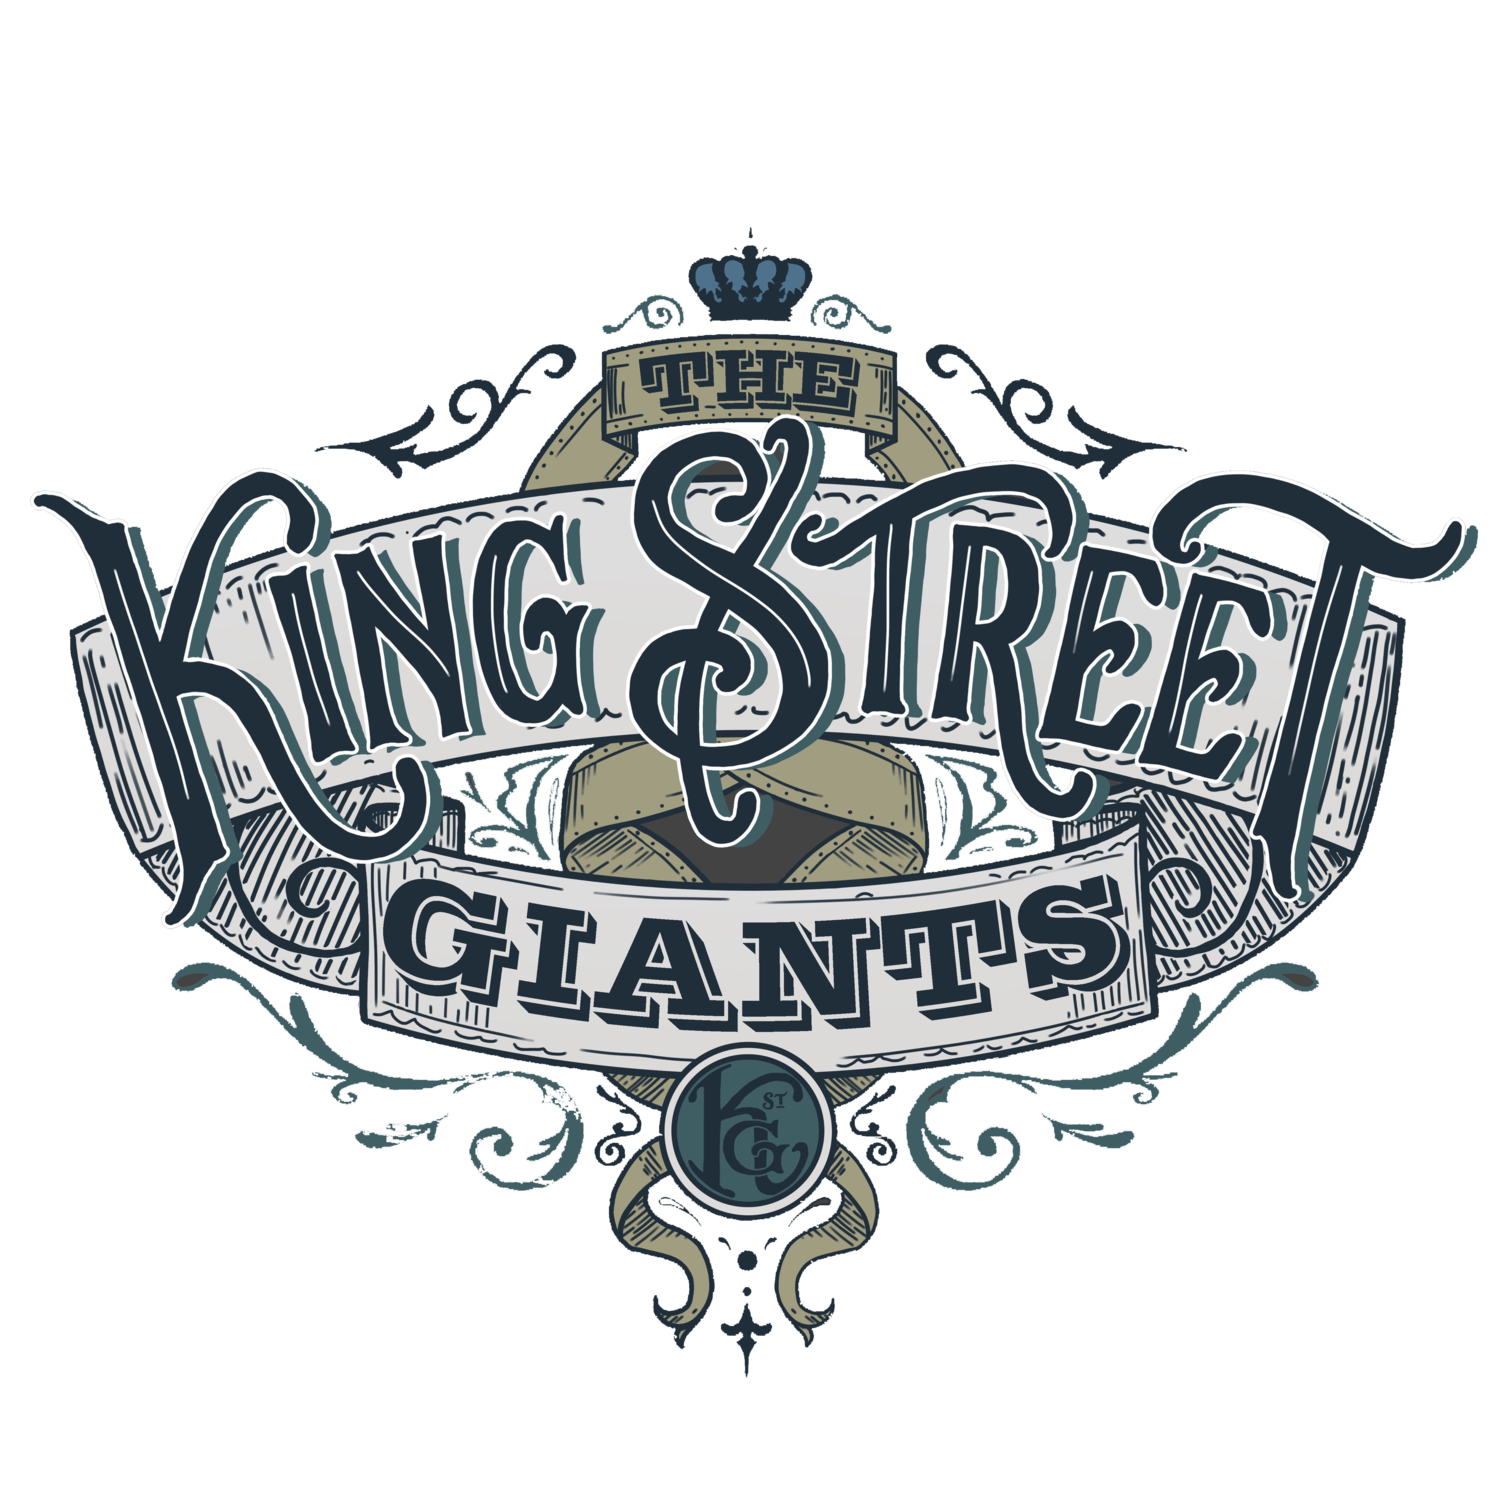 The King Street Giants